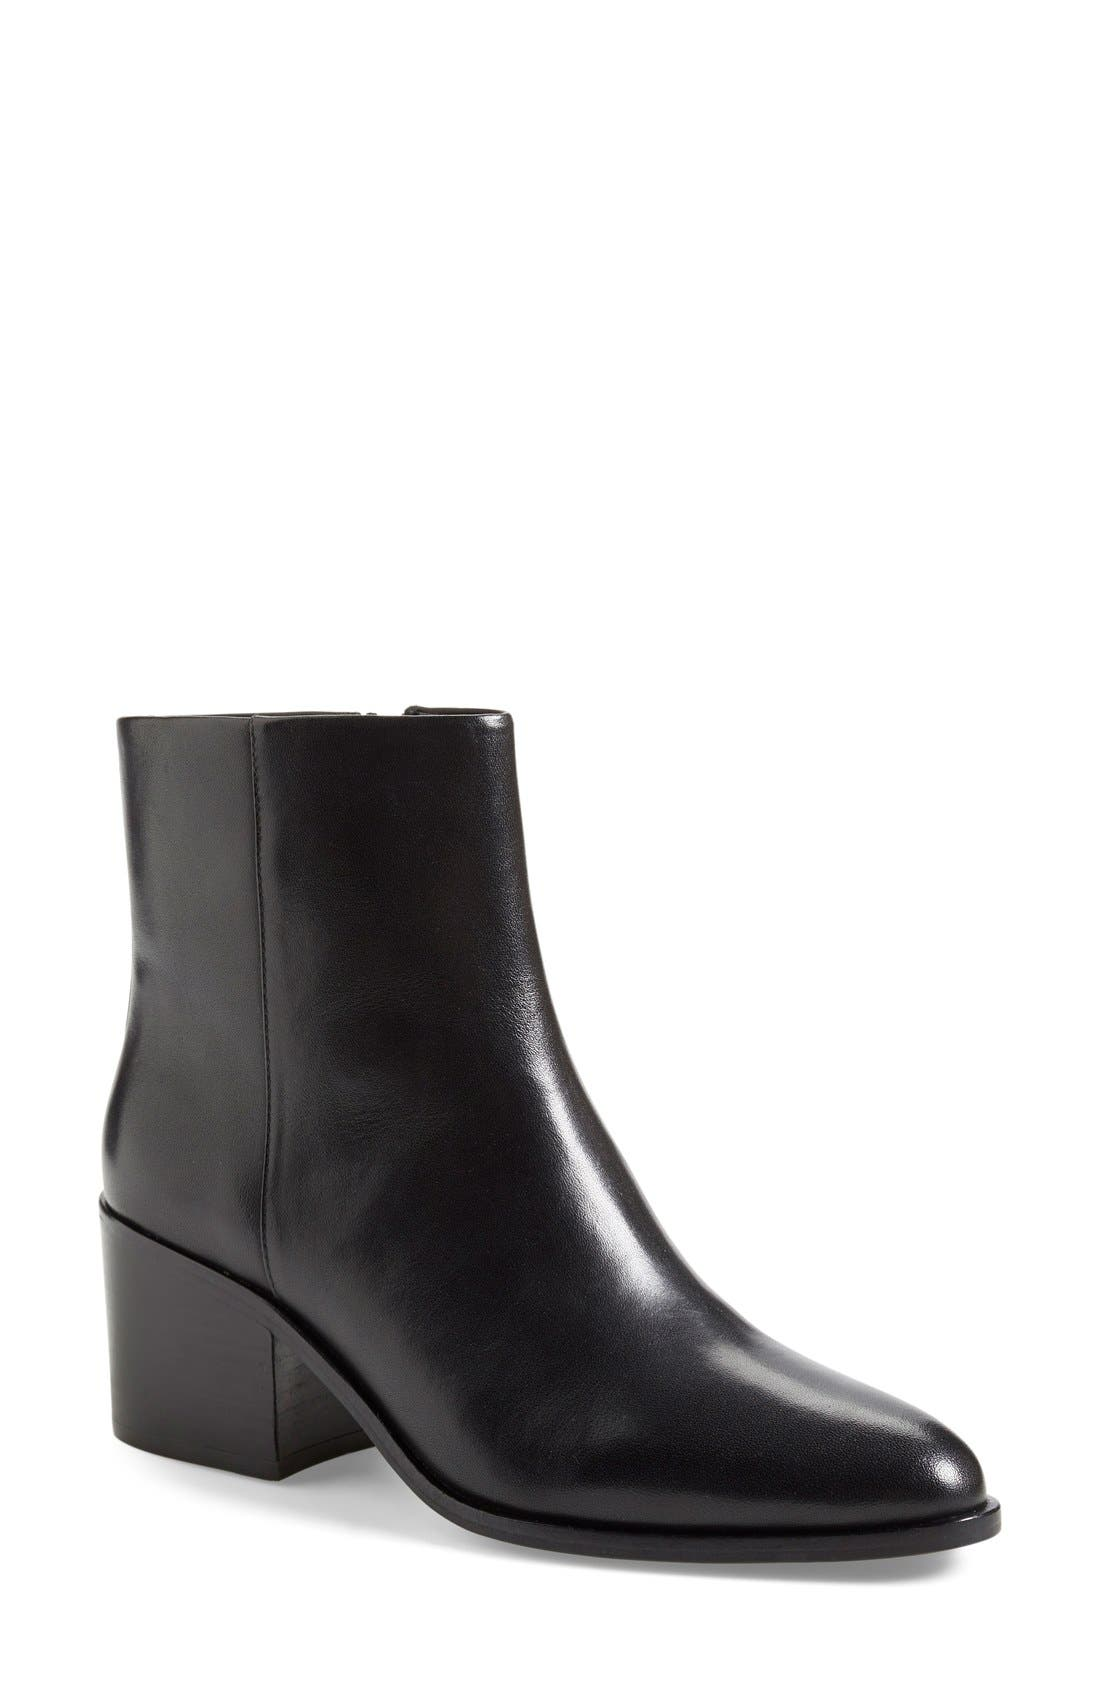 Main Image - Opening Ceremony 'Livv' Ankle Boot (Women)